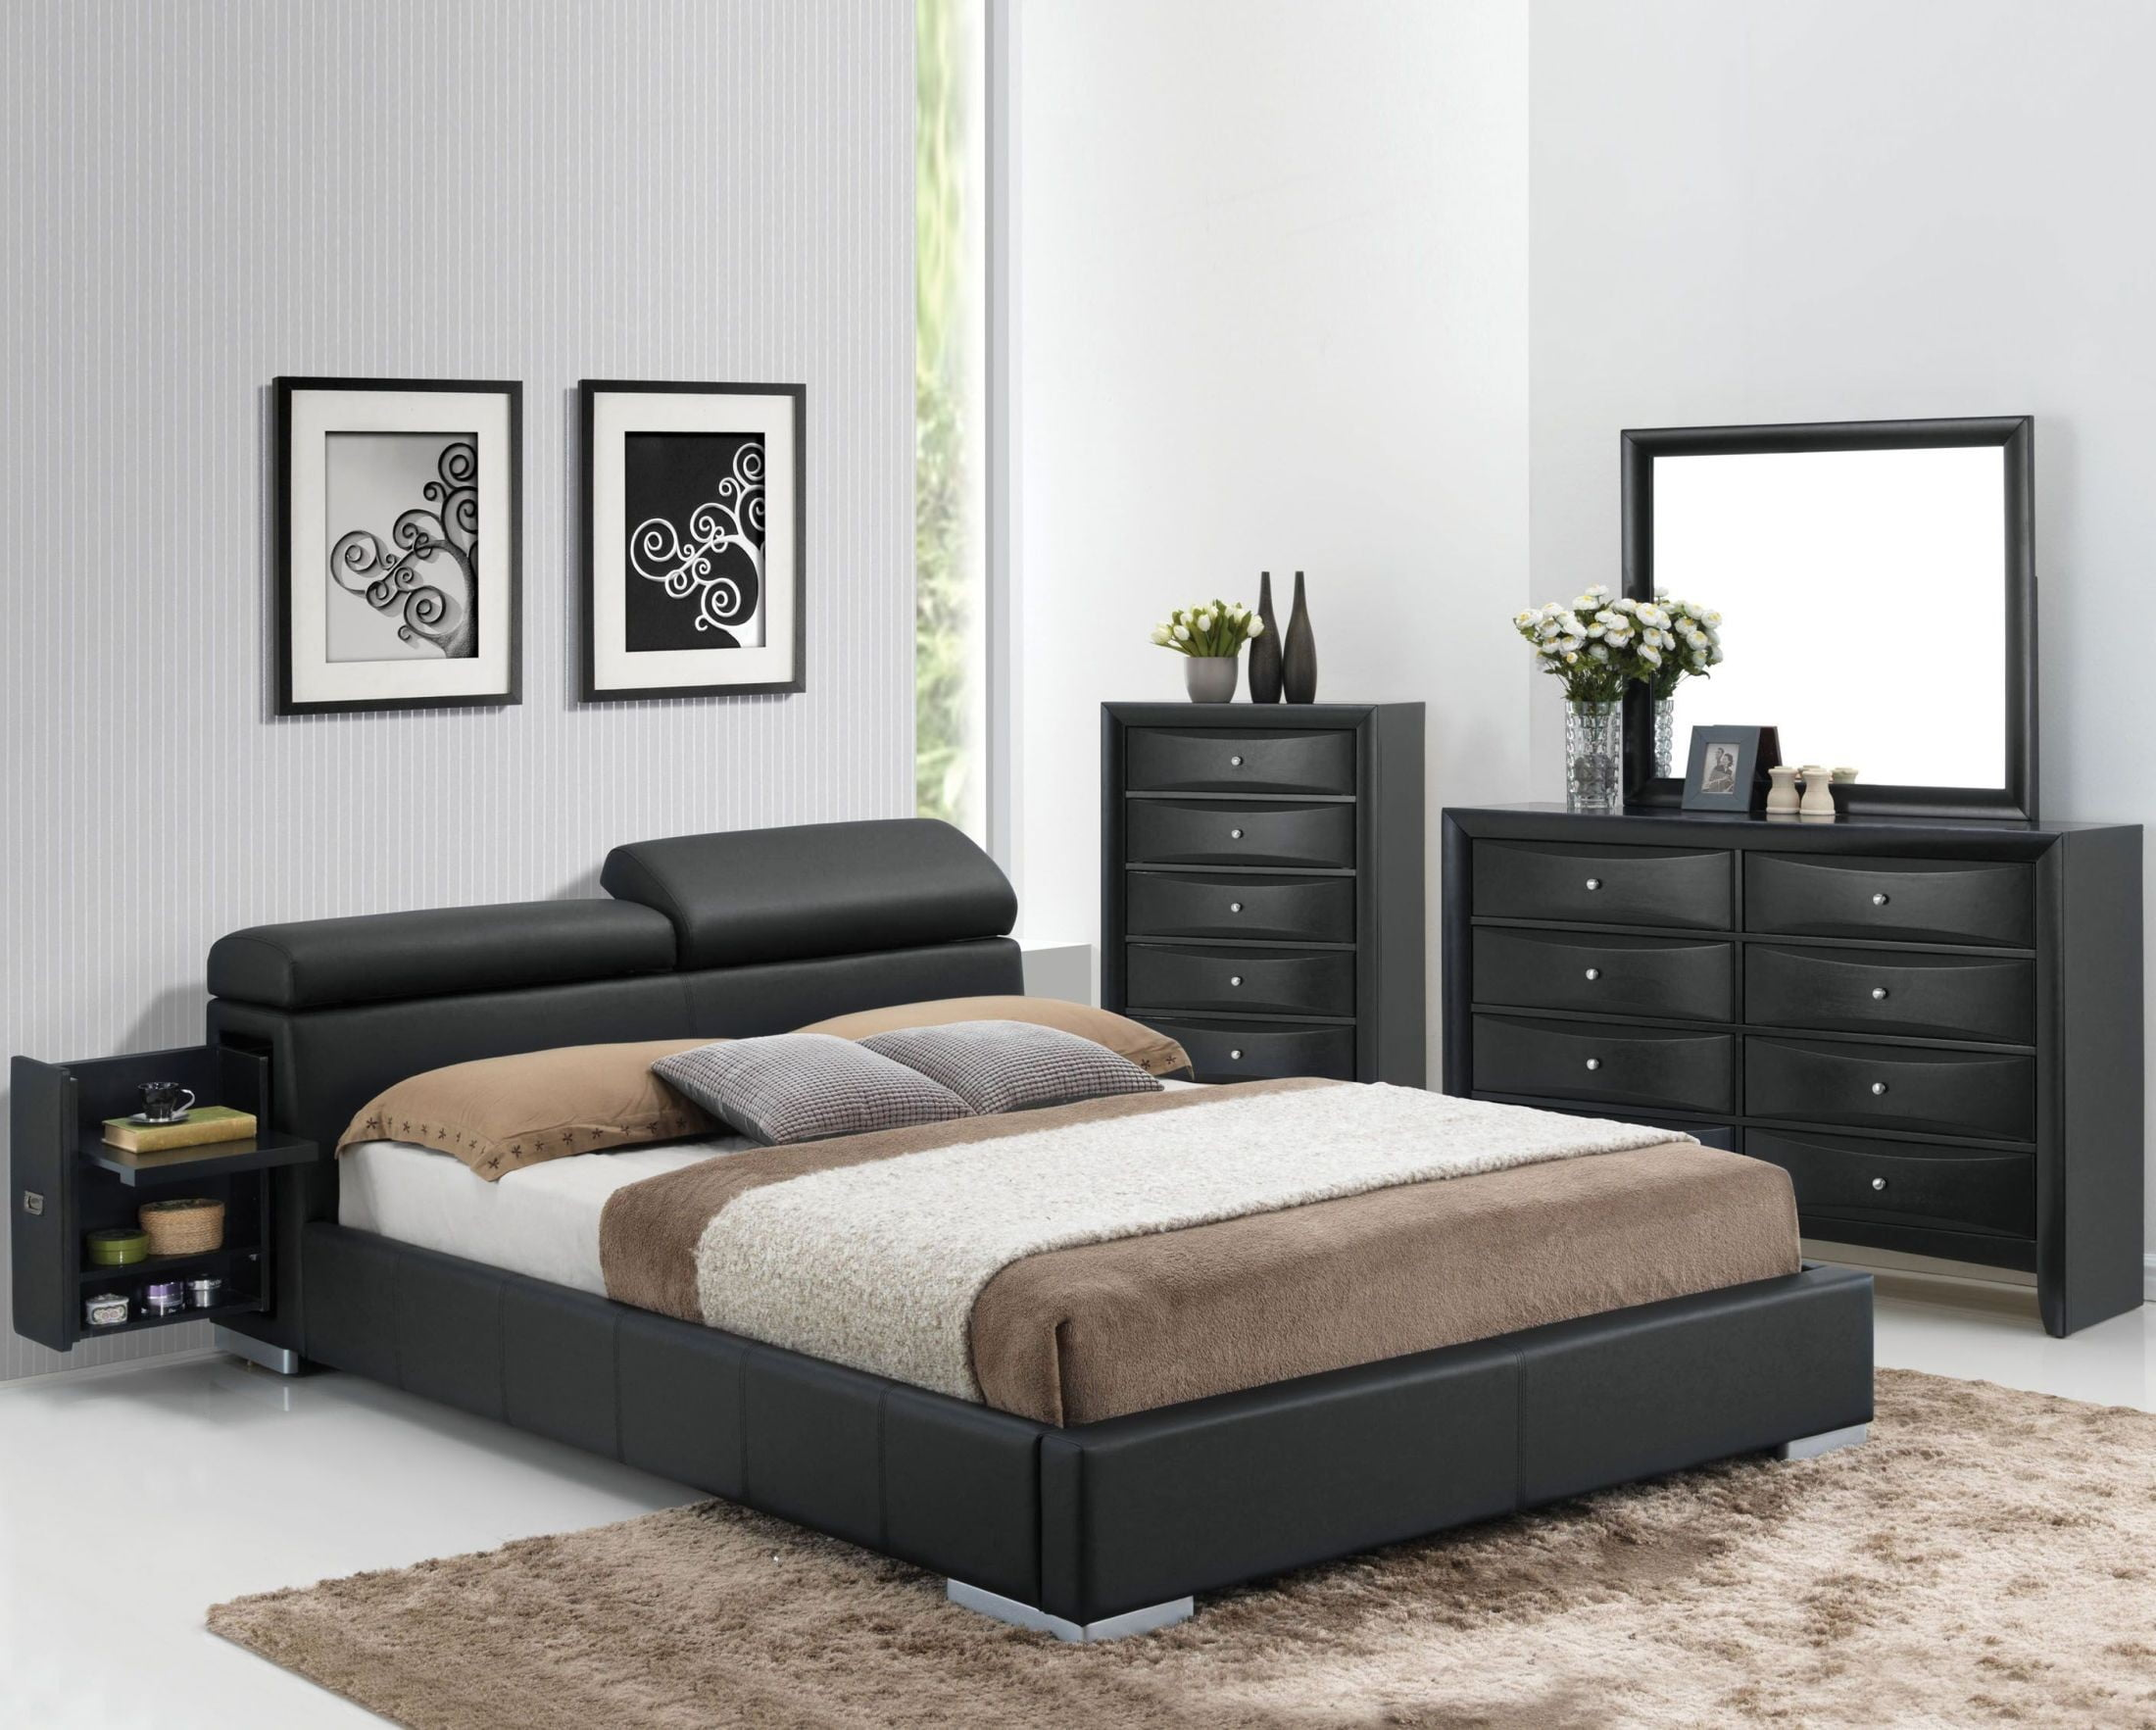 Contemporary Bedroom Set London Black By Acme Furniture: Manjot Black Bedroom Set Hidden Storage Platform Bedroom